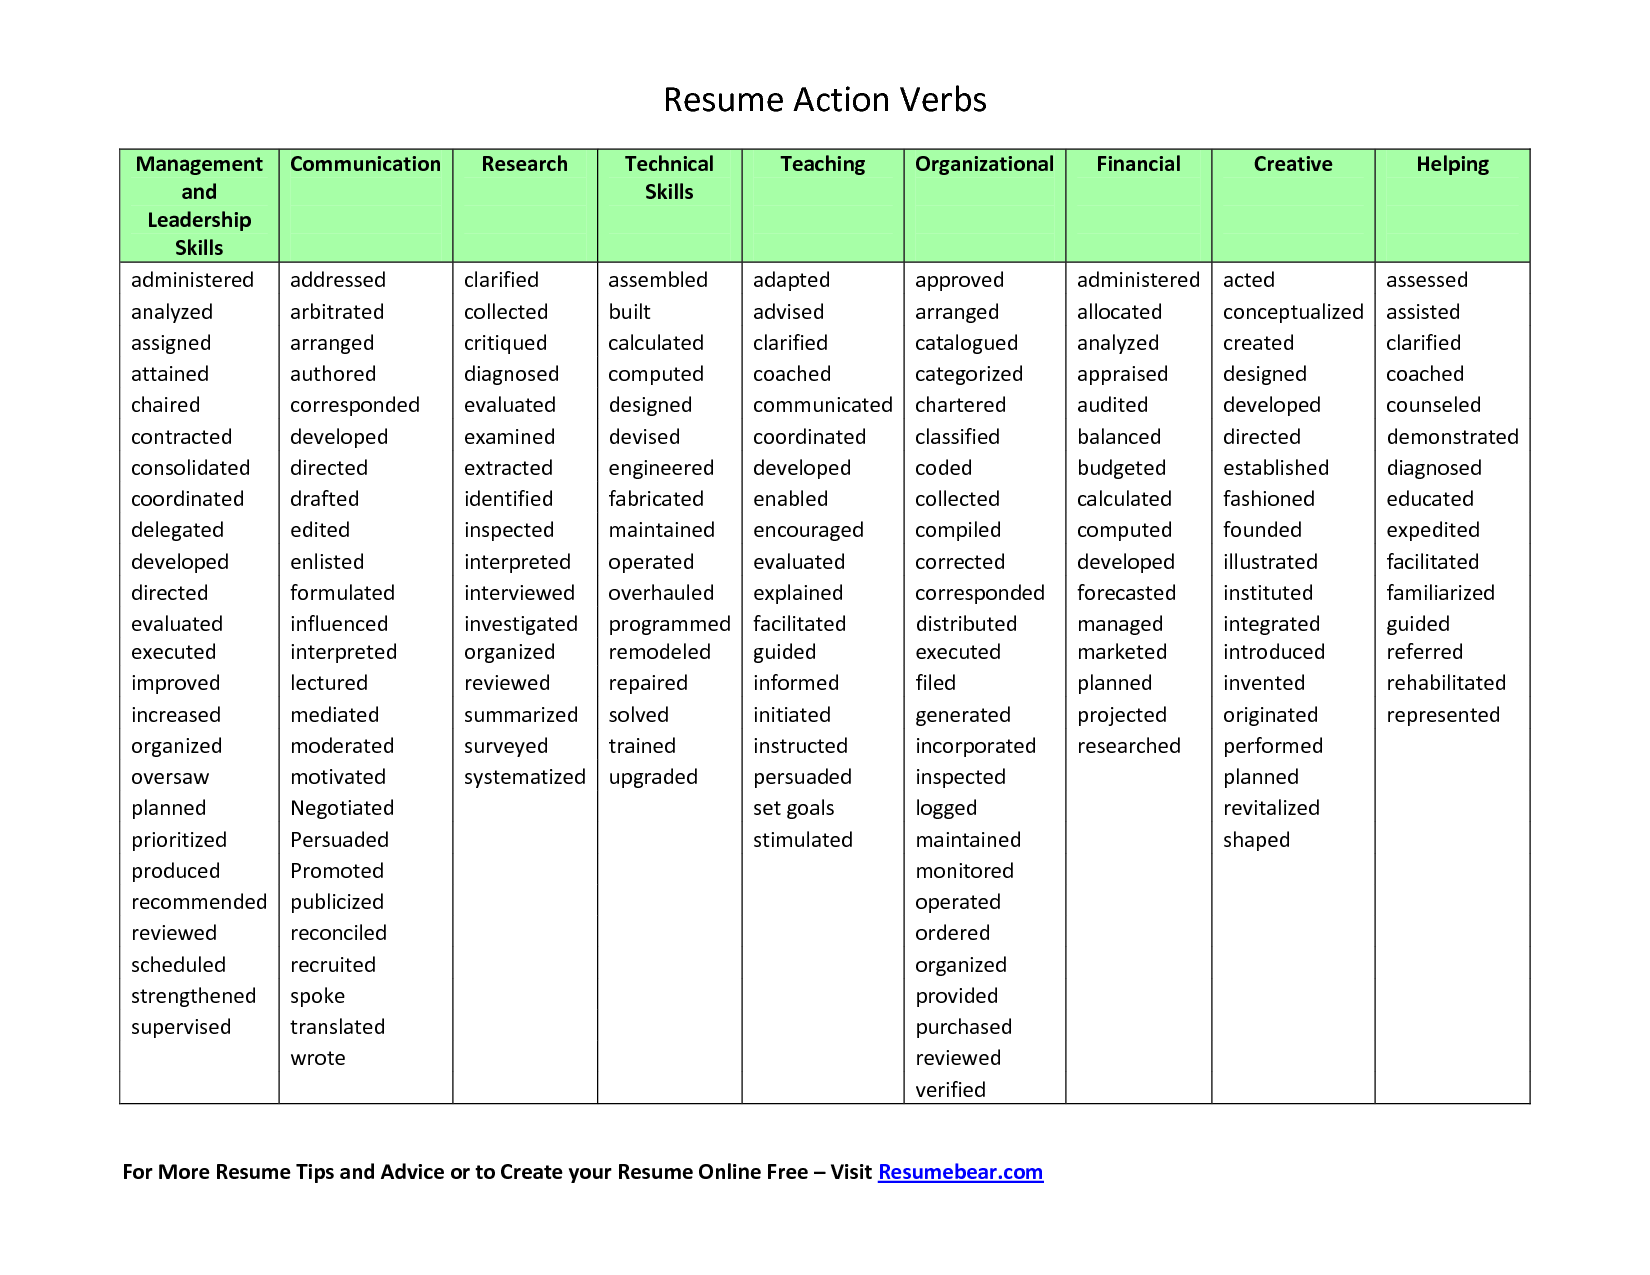 resume action verbs printable chart from resume bear application